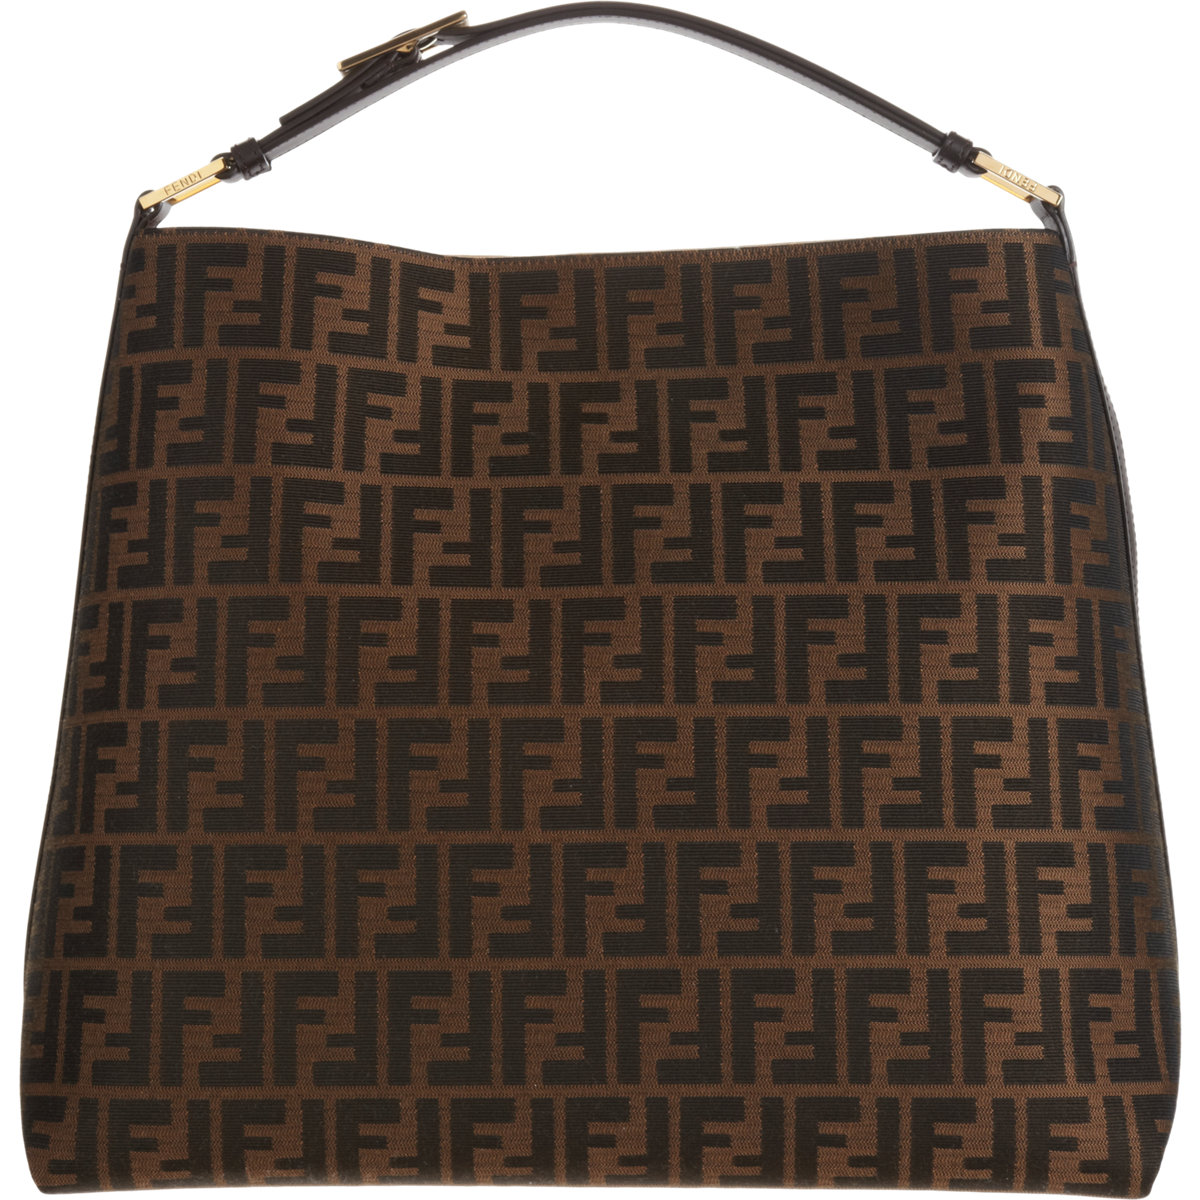 ... clearance fendi zucca hobo bag in brown lyst d1414 67c7f 87f59e60bfb93